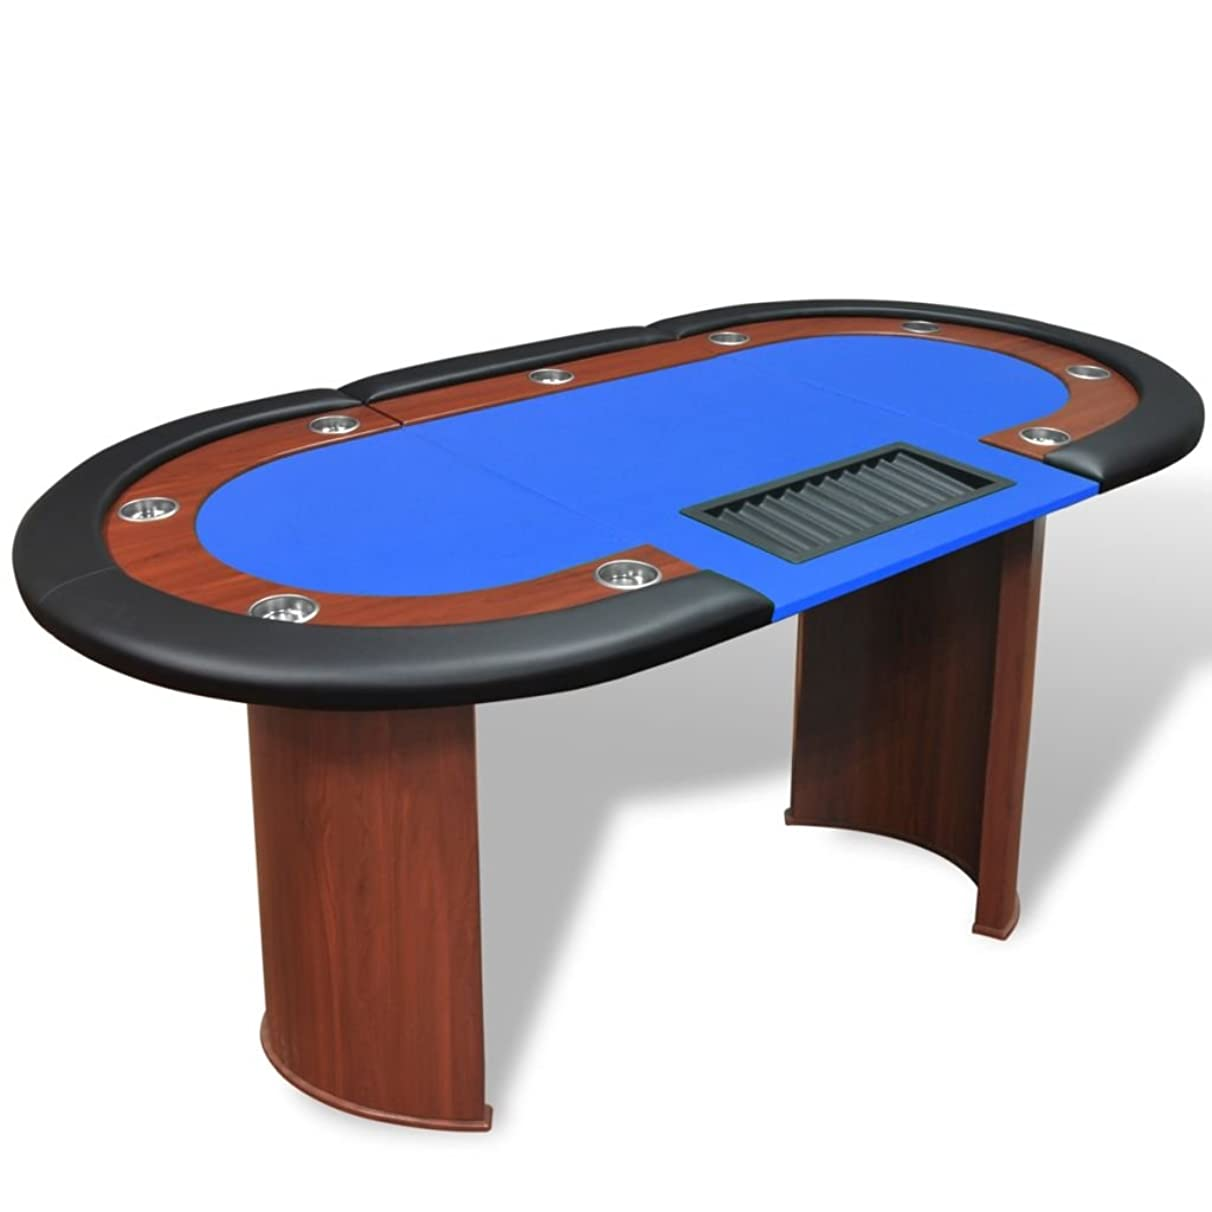 Festnight 10 Player Poker Play Table Luxury Casino Texas Holdem Card Game Table Cup Holder with Dealer Area Cushioned Rail and Removable Chip Tray 82